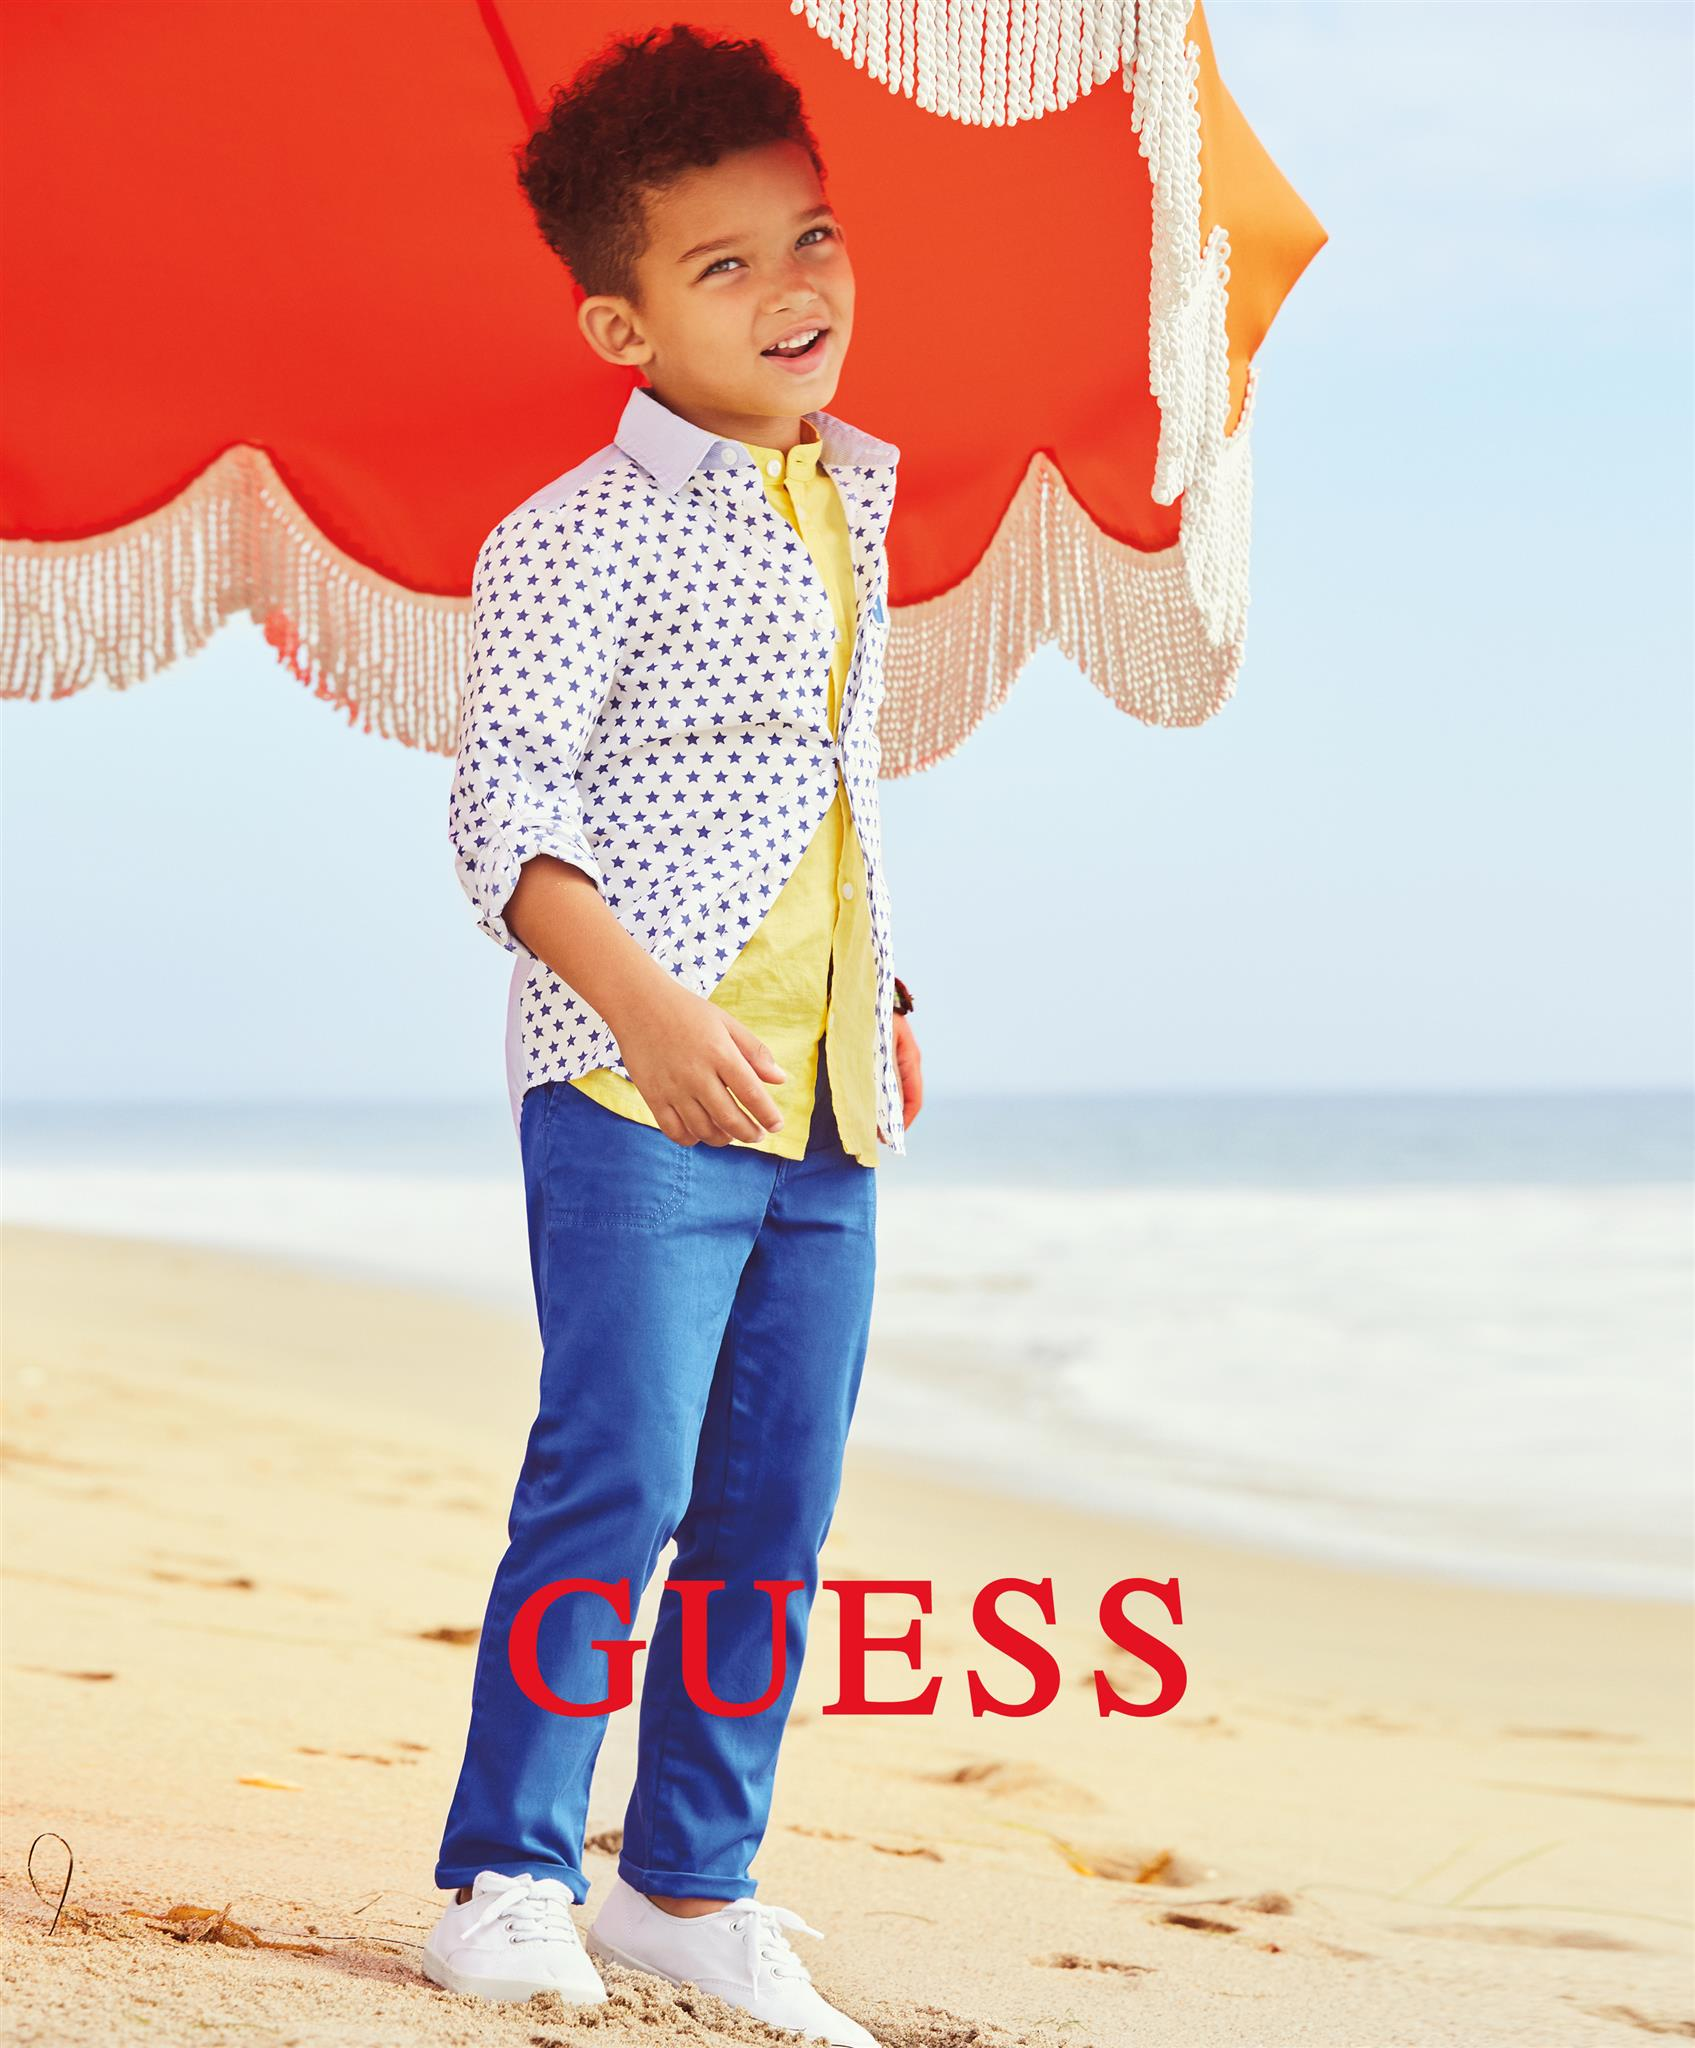 599_GUESS_Kids_Sp18_V17